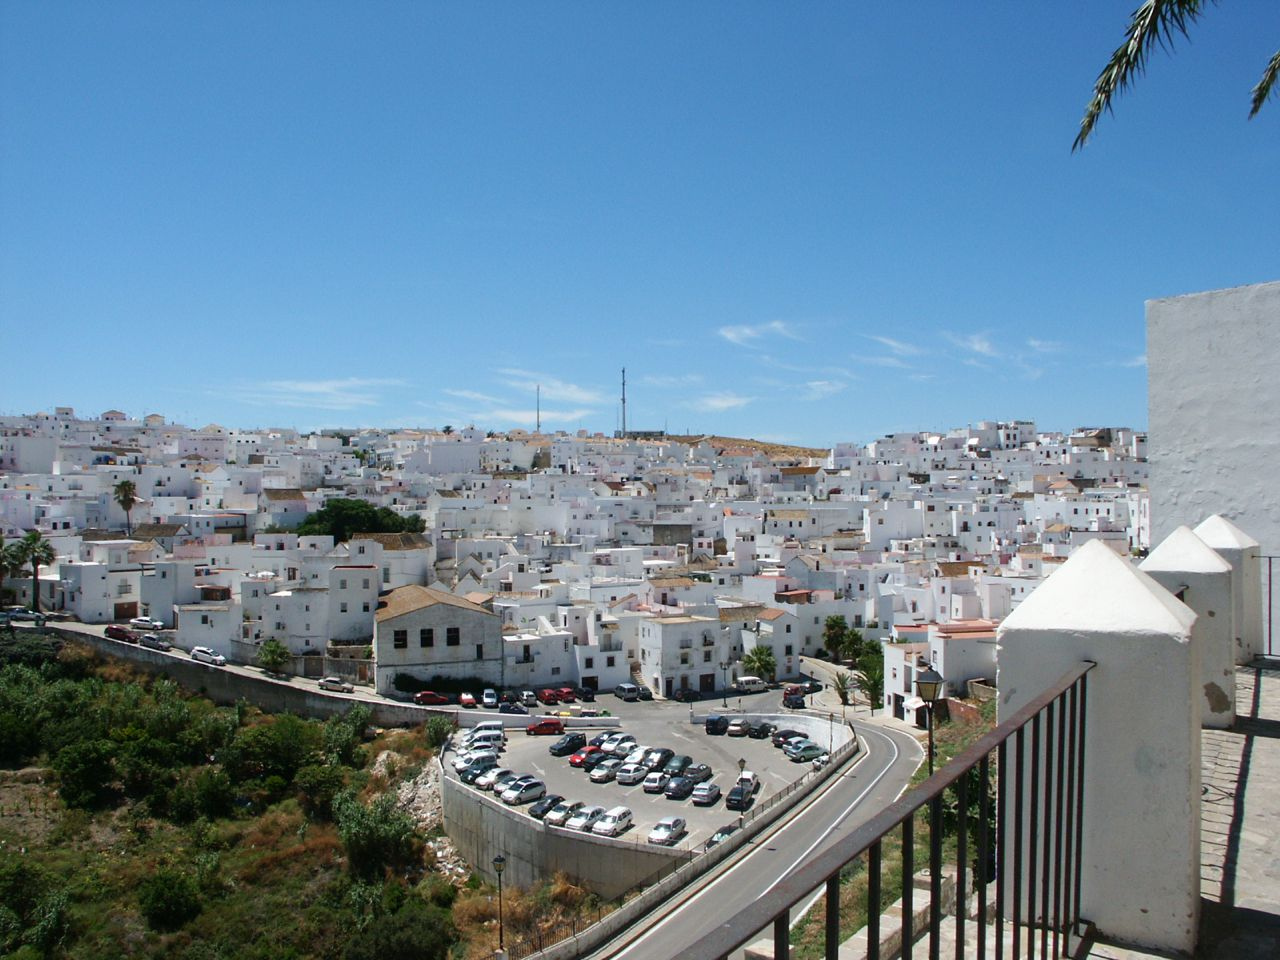 View of the White Town from the top